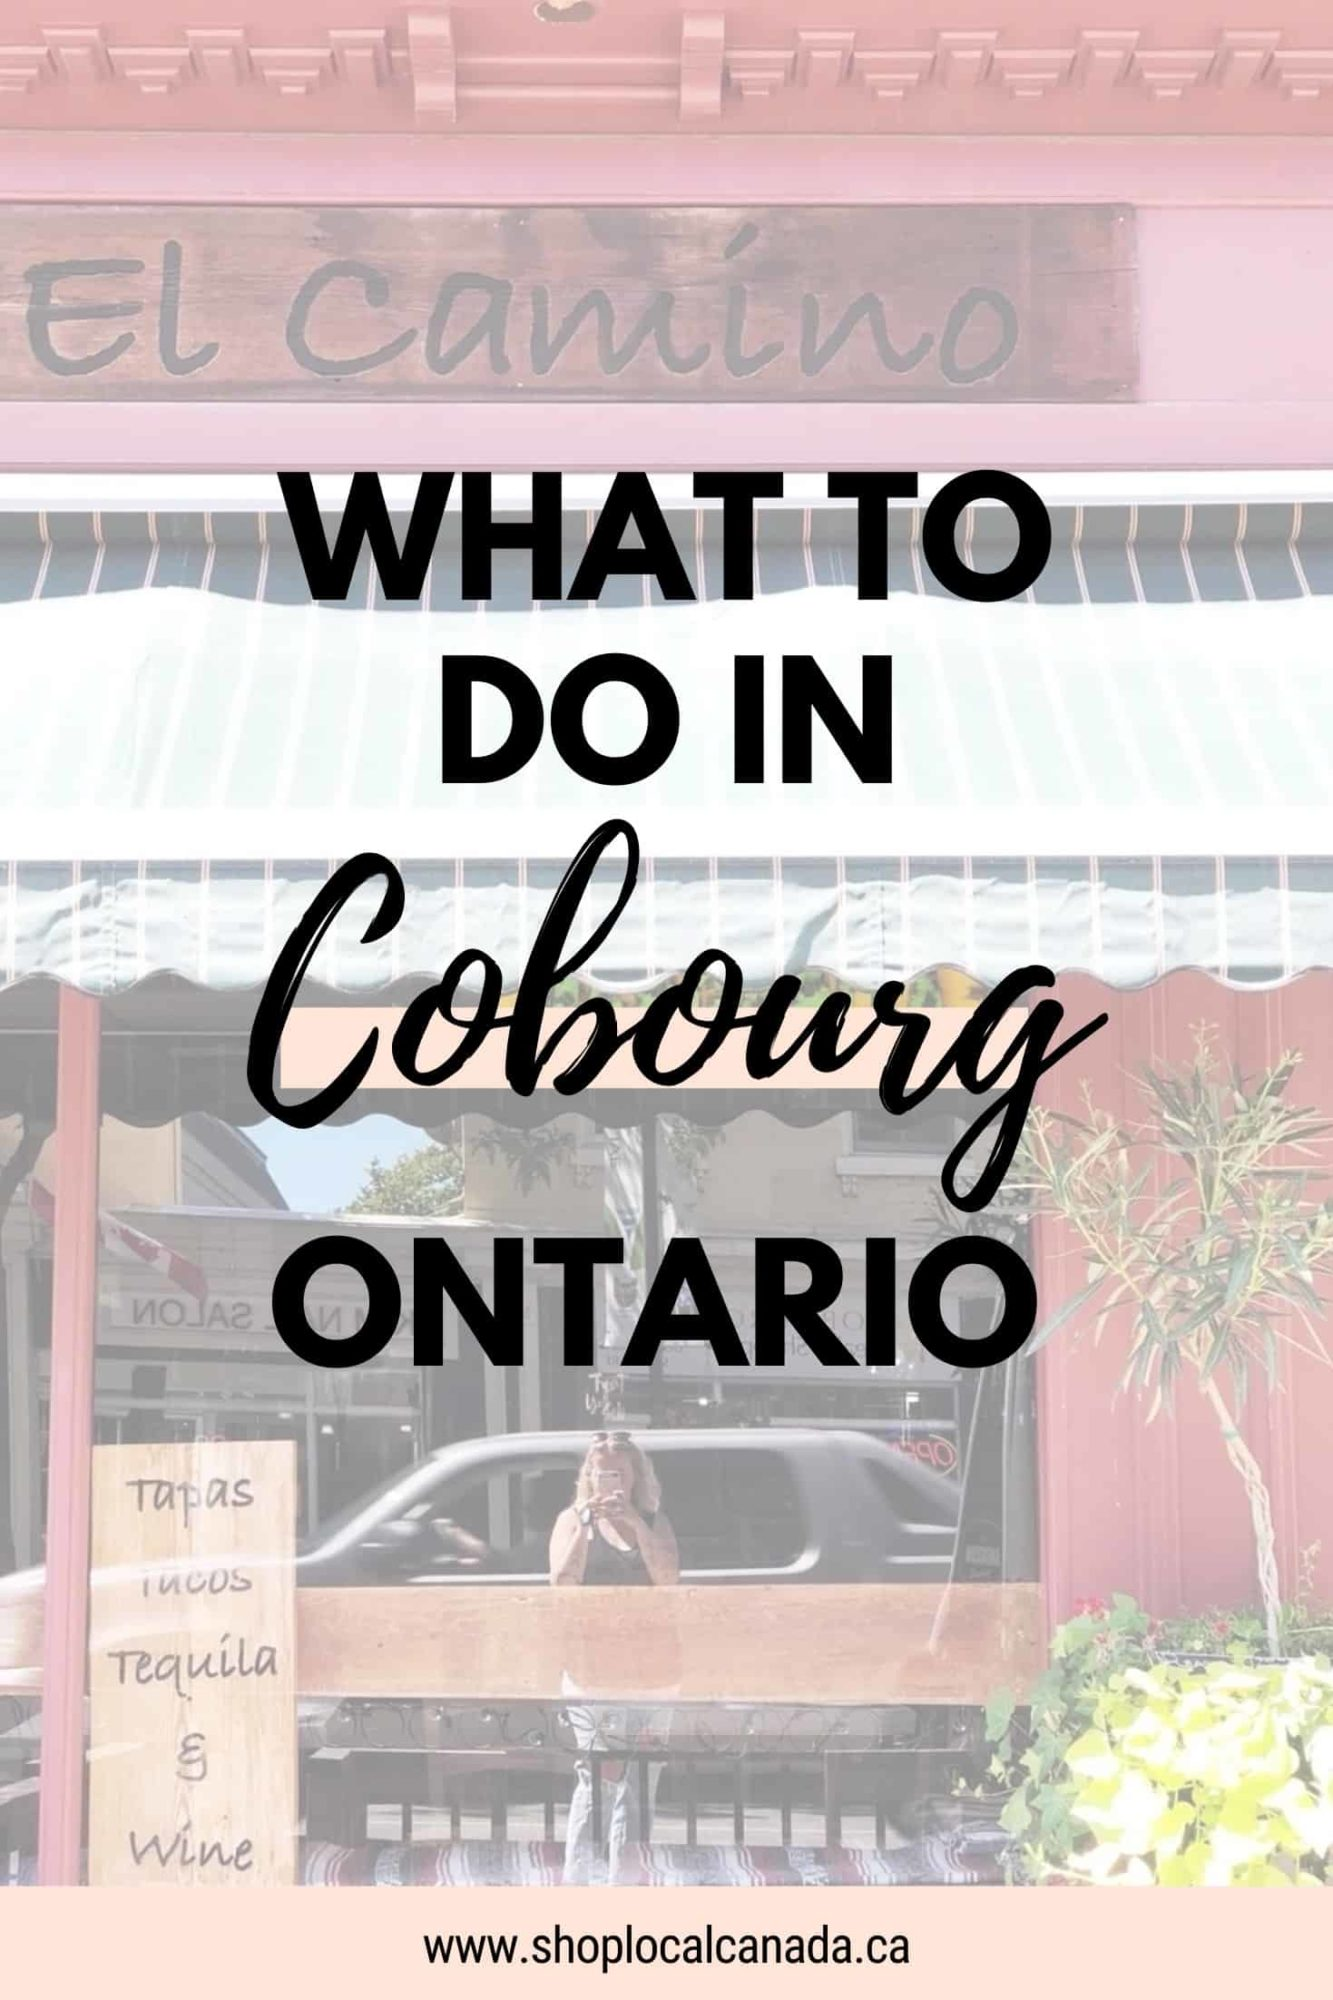 What to do in Cobourg Ontario